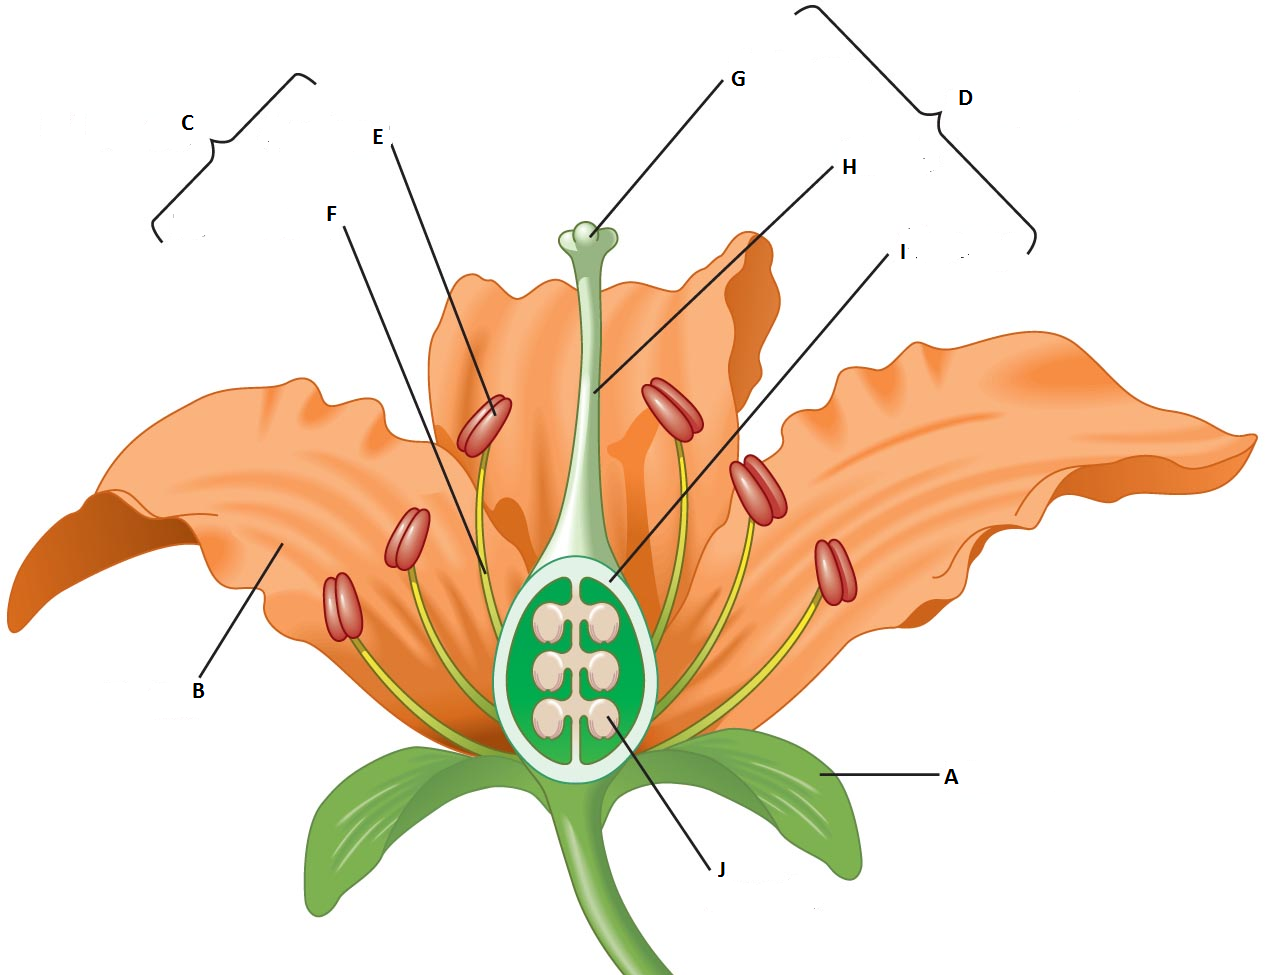 small resolution of diagram quiz on flower parts biology multiple choice quizzes png 1265x975 unlabeled pollination diagram